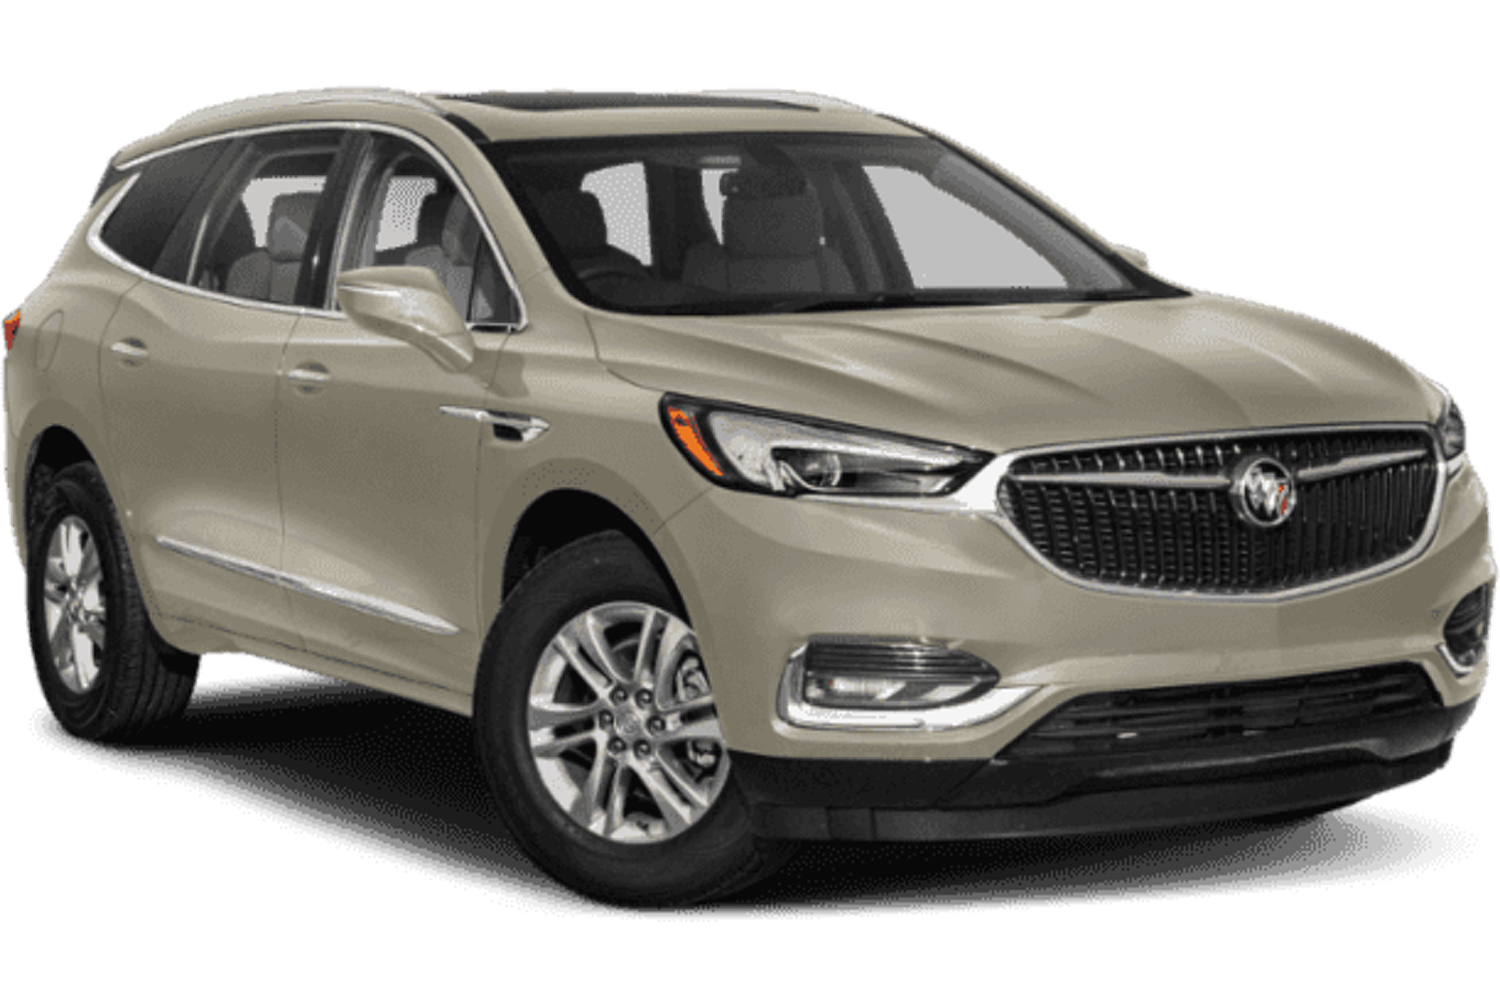 new 2022 buick enclave avenir owners manual, pictures